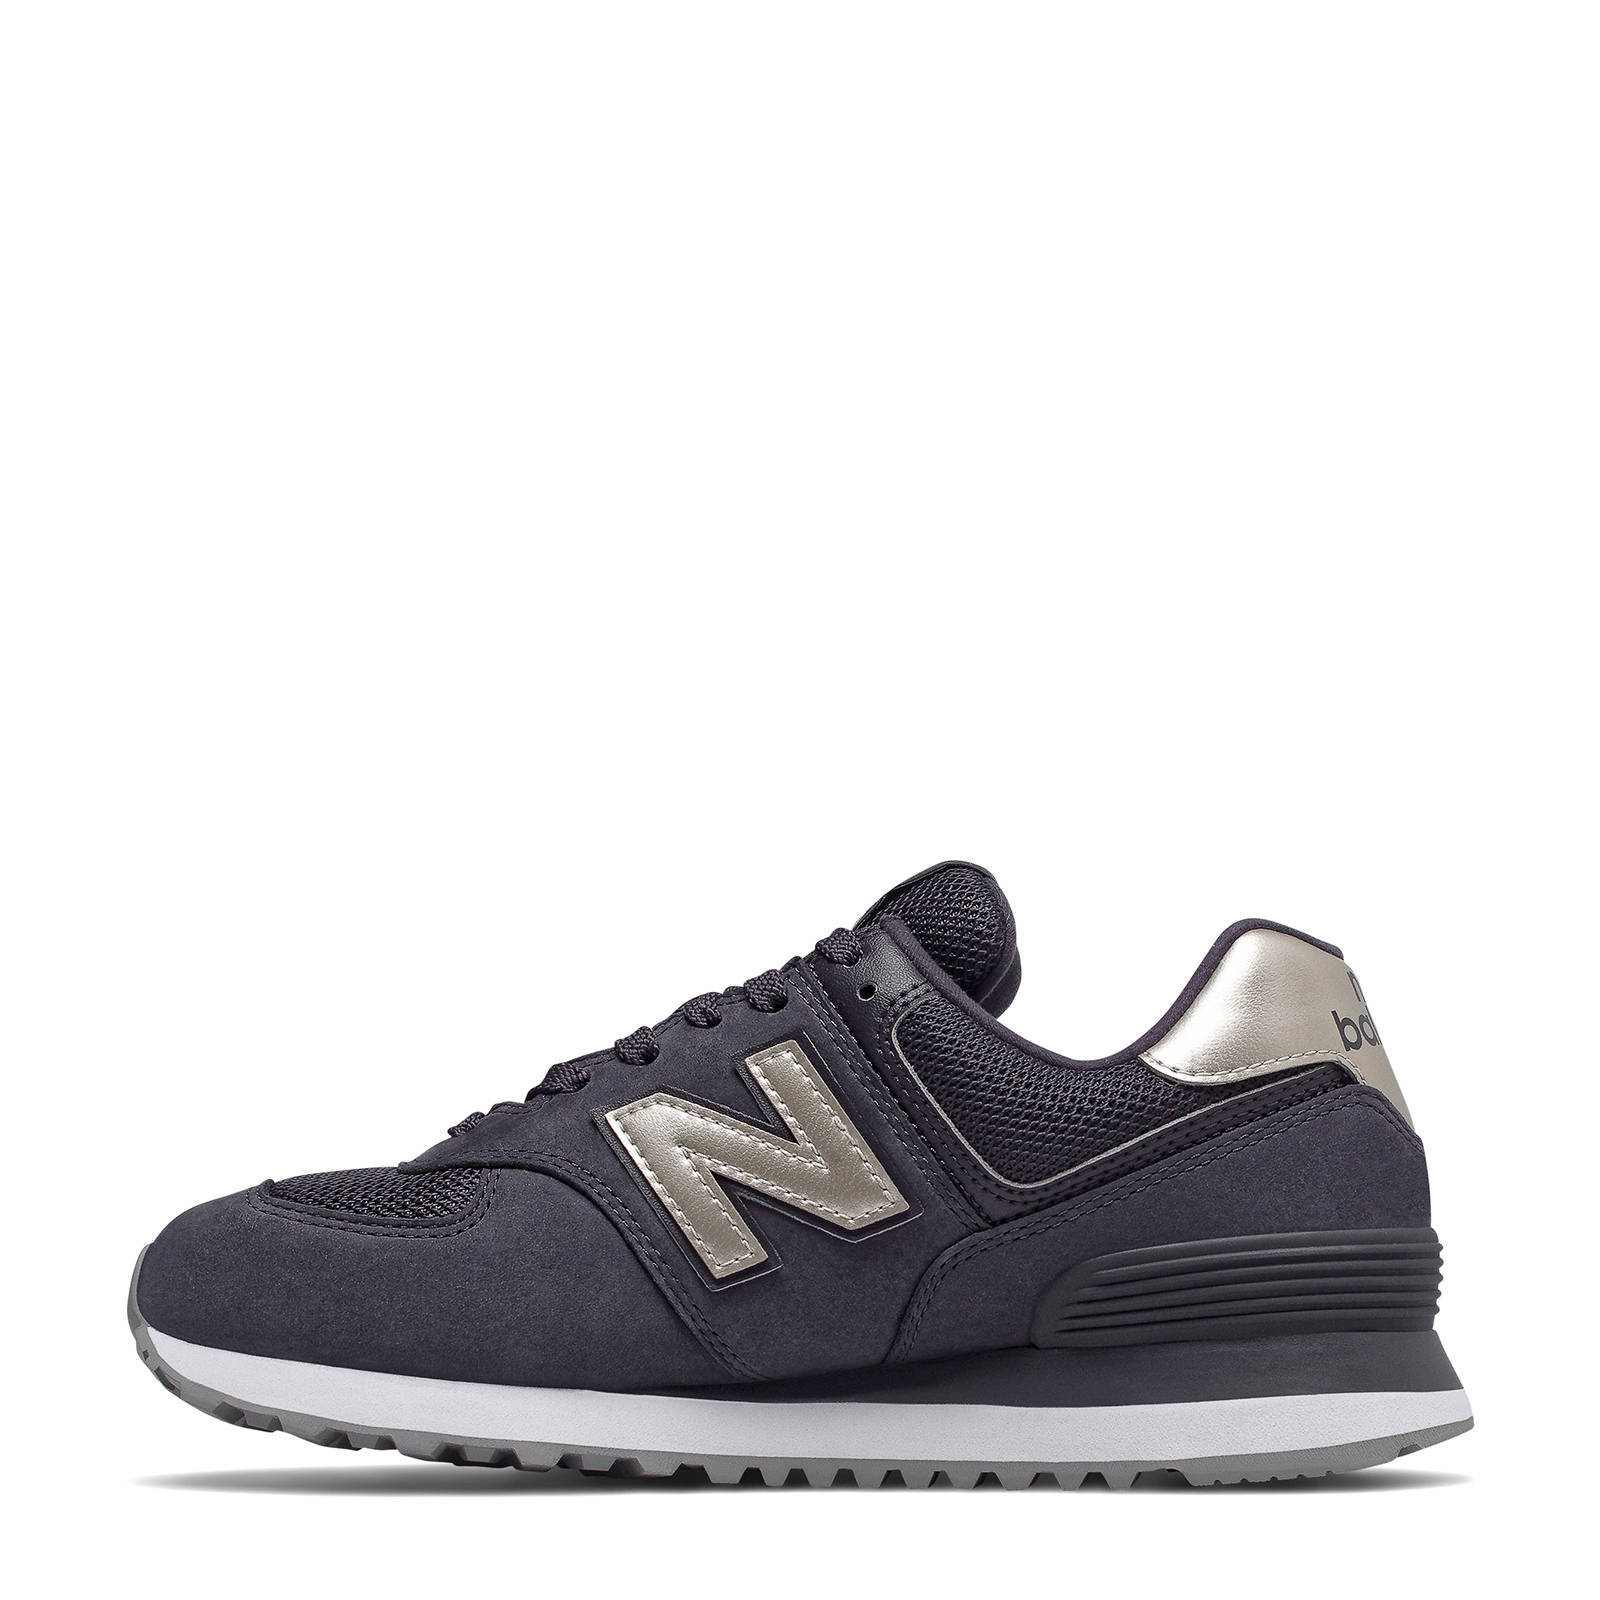 New Balance WH574 suède sneakers paarszilver | wehkamp